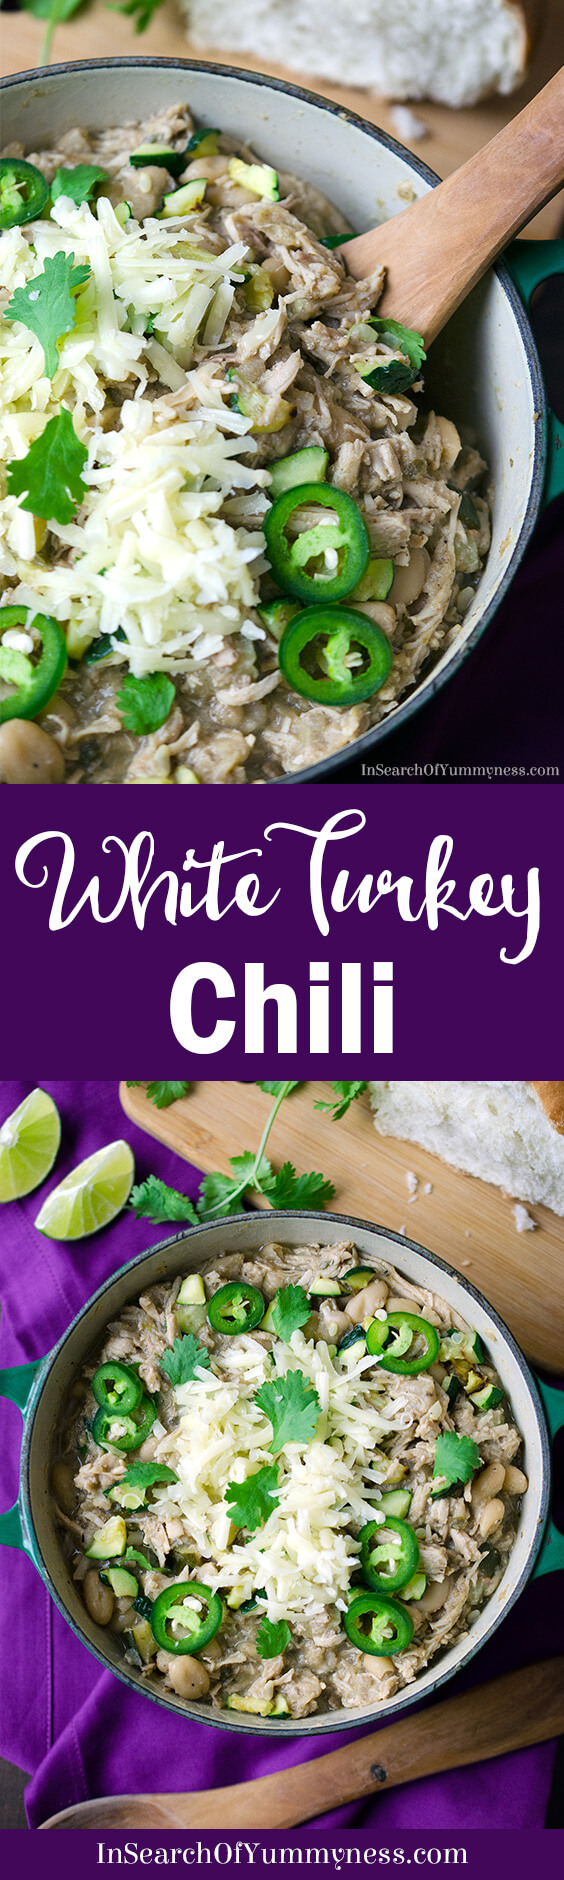 Do you have a picky eater at your house? Make them this mild but flavourful white turkey chili! Get the #recipe at InSearchOfYummyness.com #Sponsored